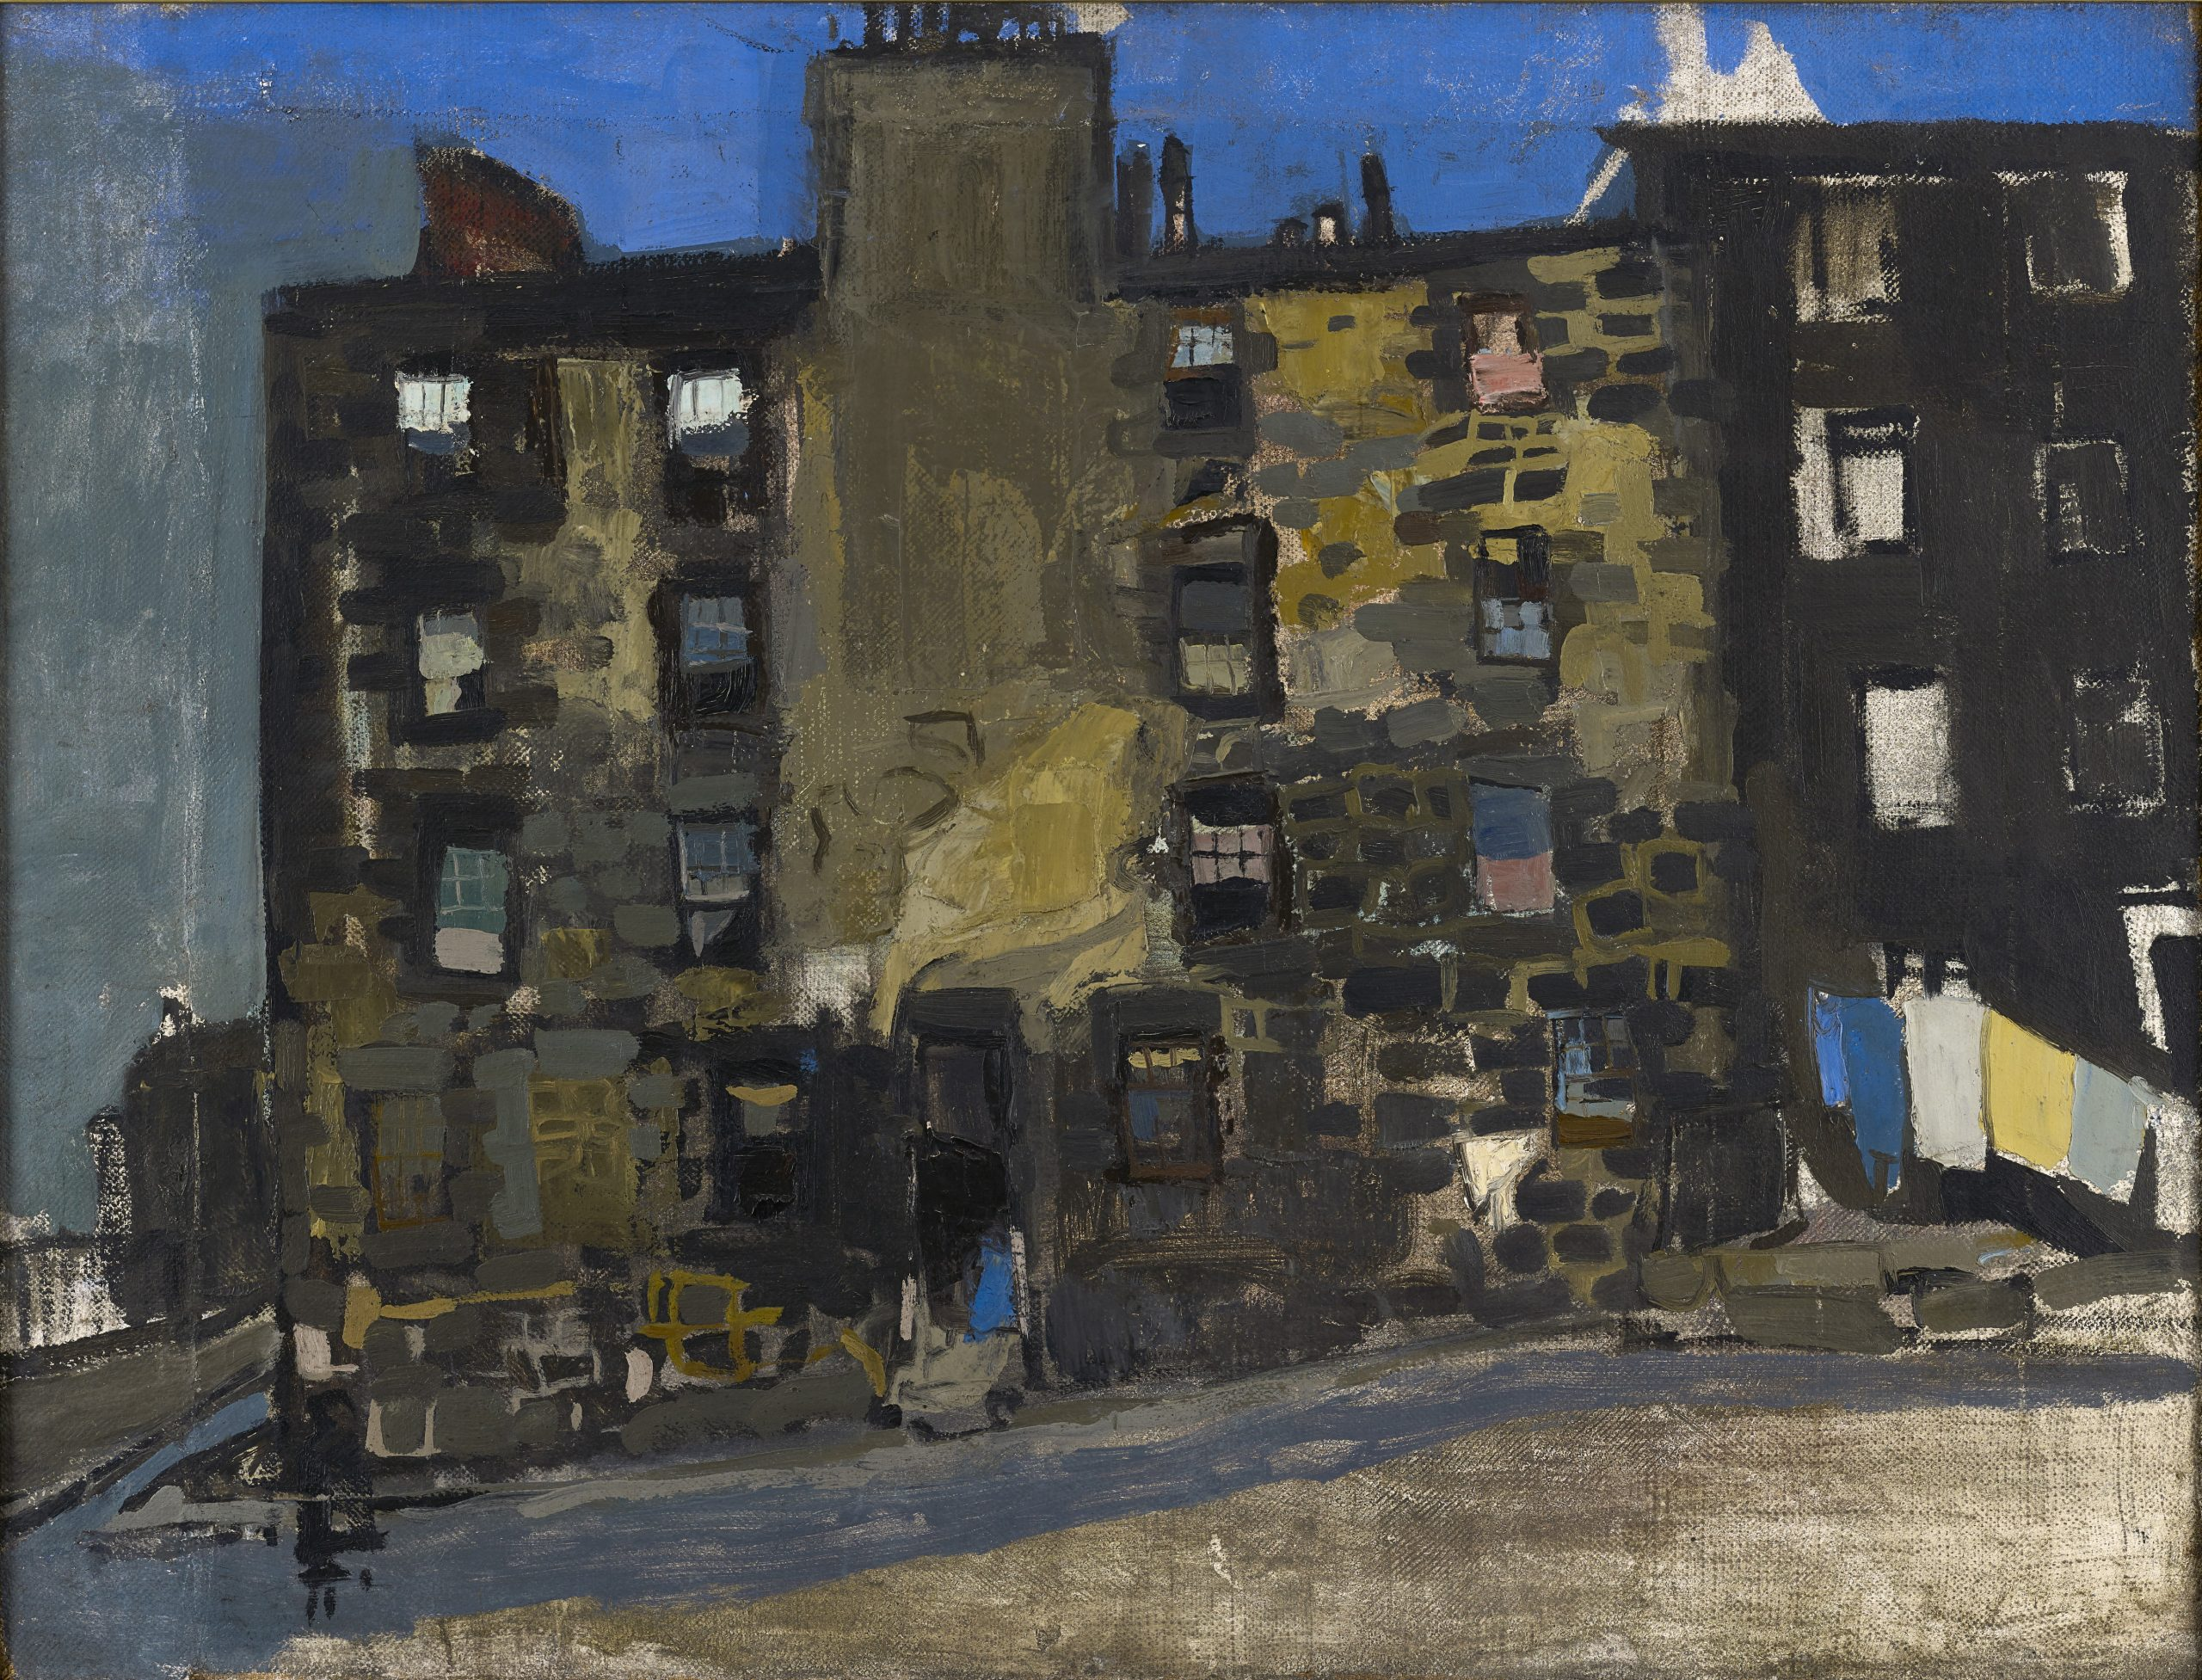 Glasgow Tenement, Blue Sky, 1956, oil on canvas, private collection.